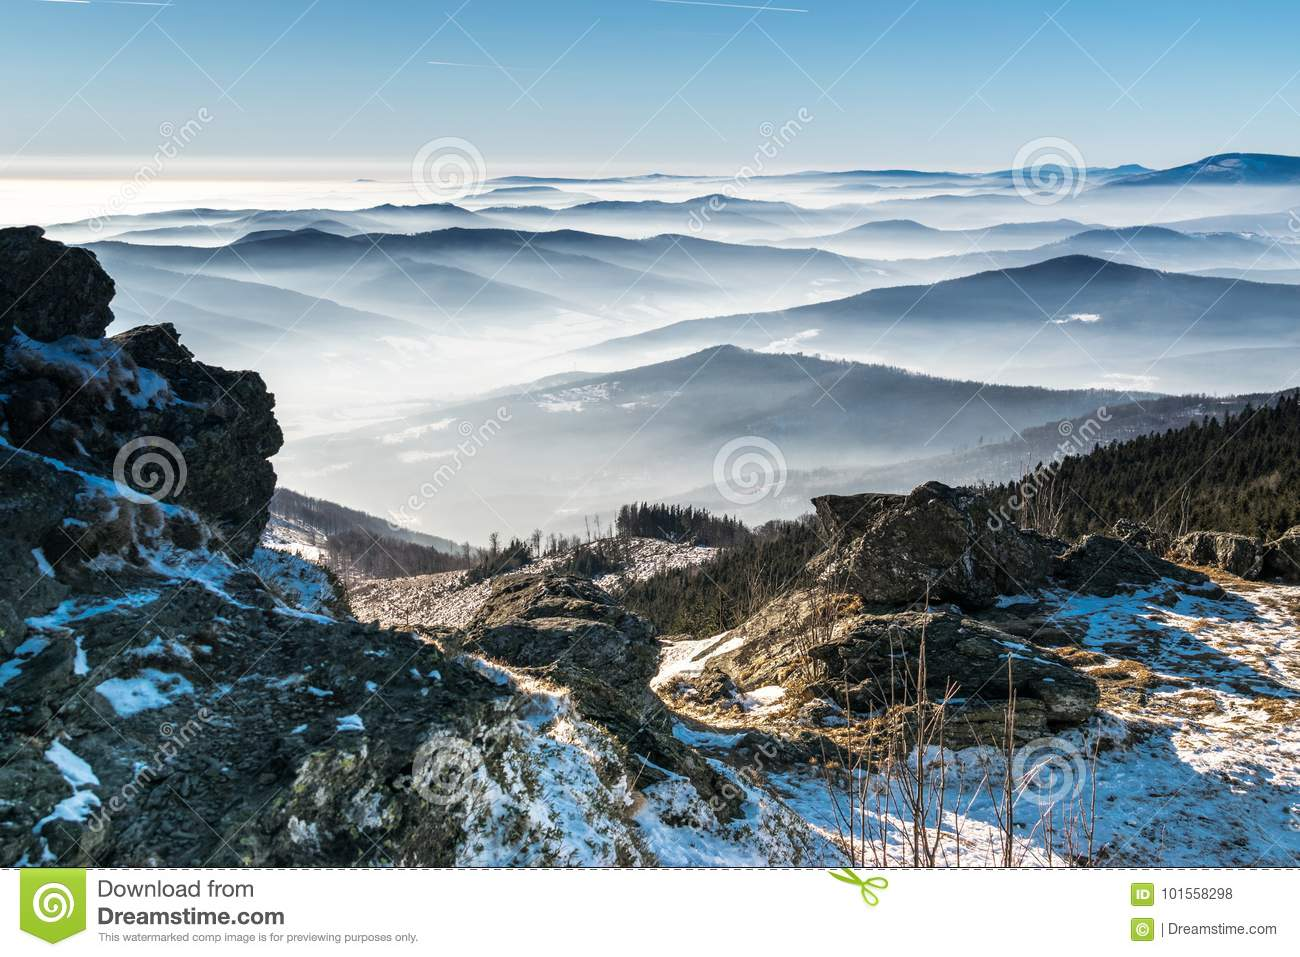 Mystery mountains in the winter